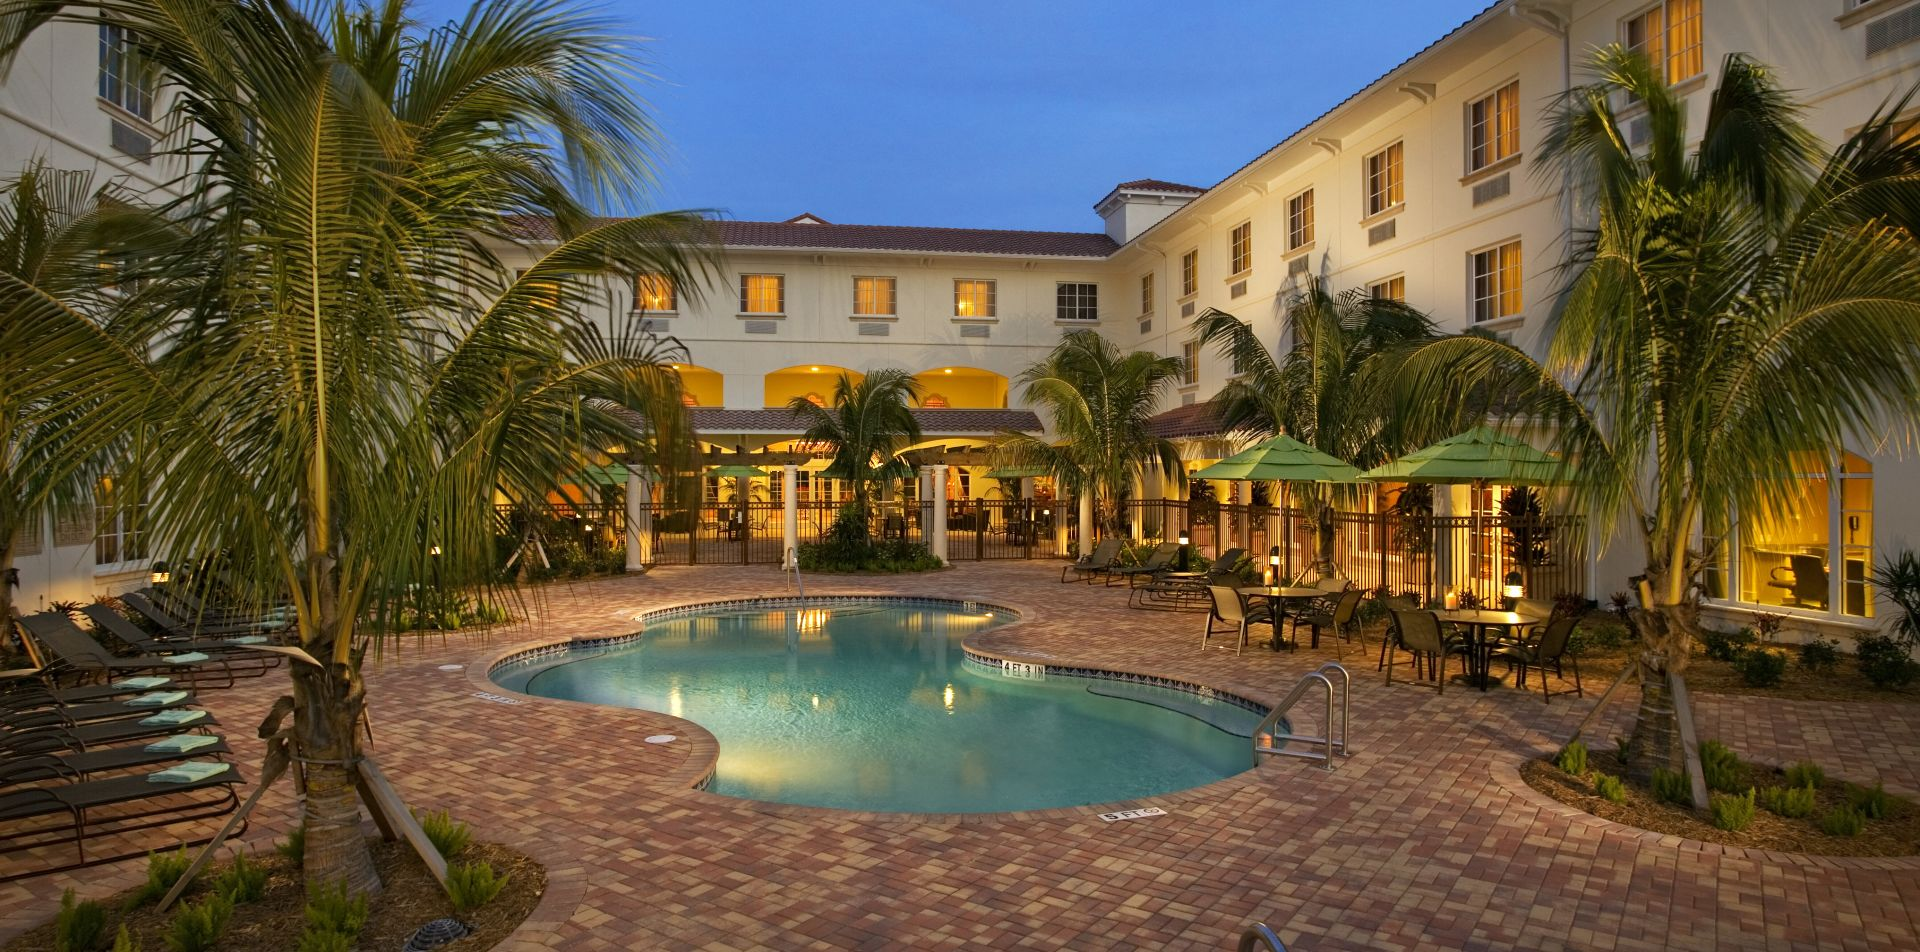 Exterior View of Hilton Garden Inn Port St. Lucie and swimming pool